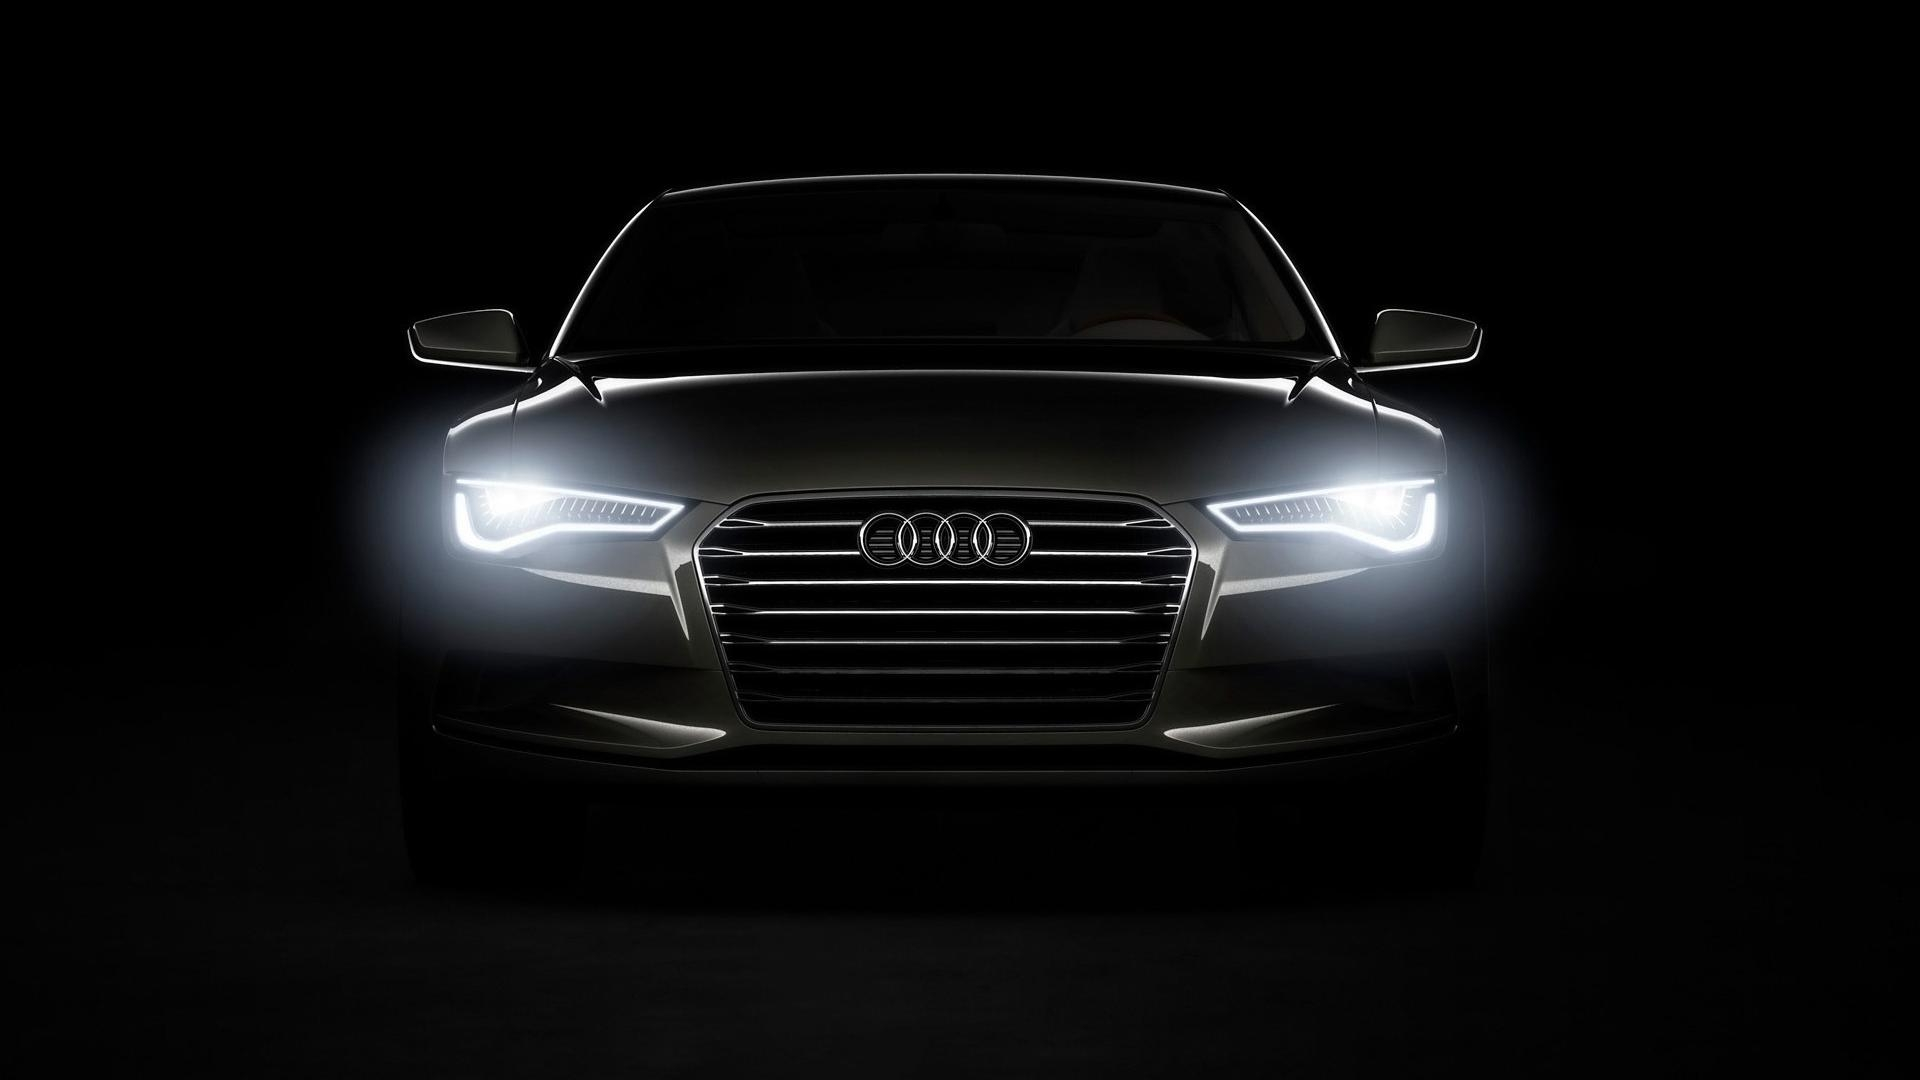 Audi Hd Wallpapers 1080p Wallpapersafari